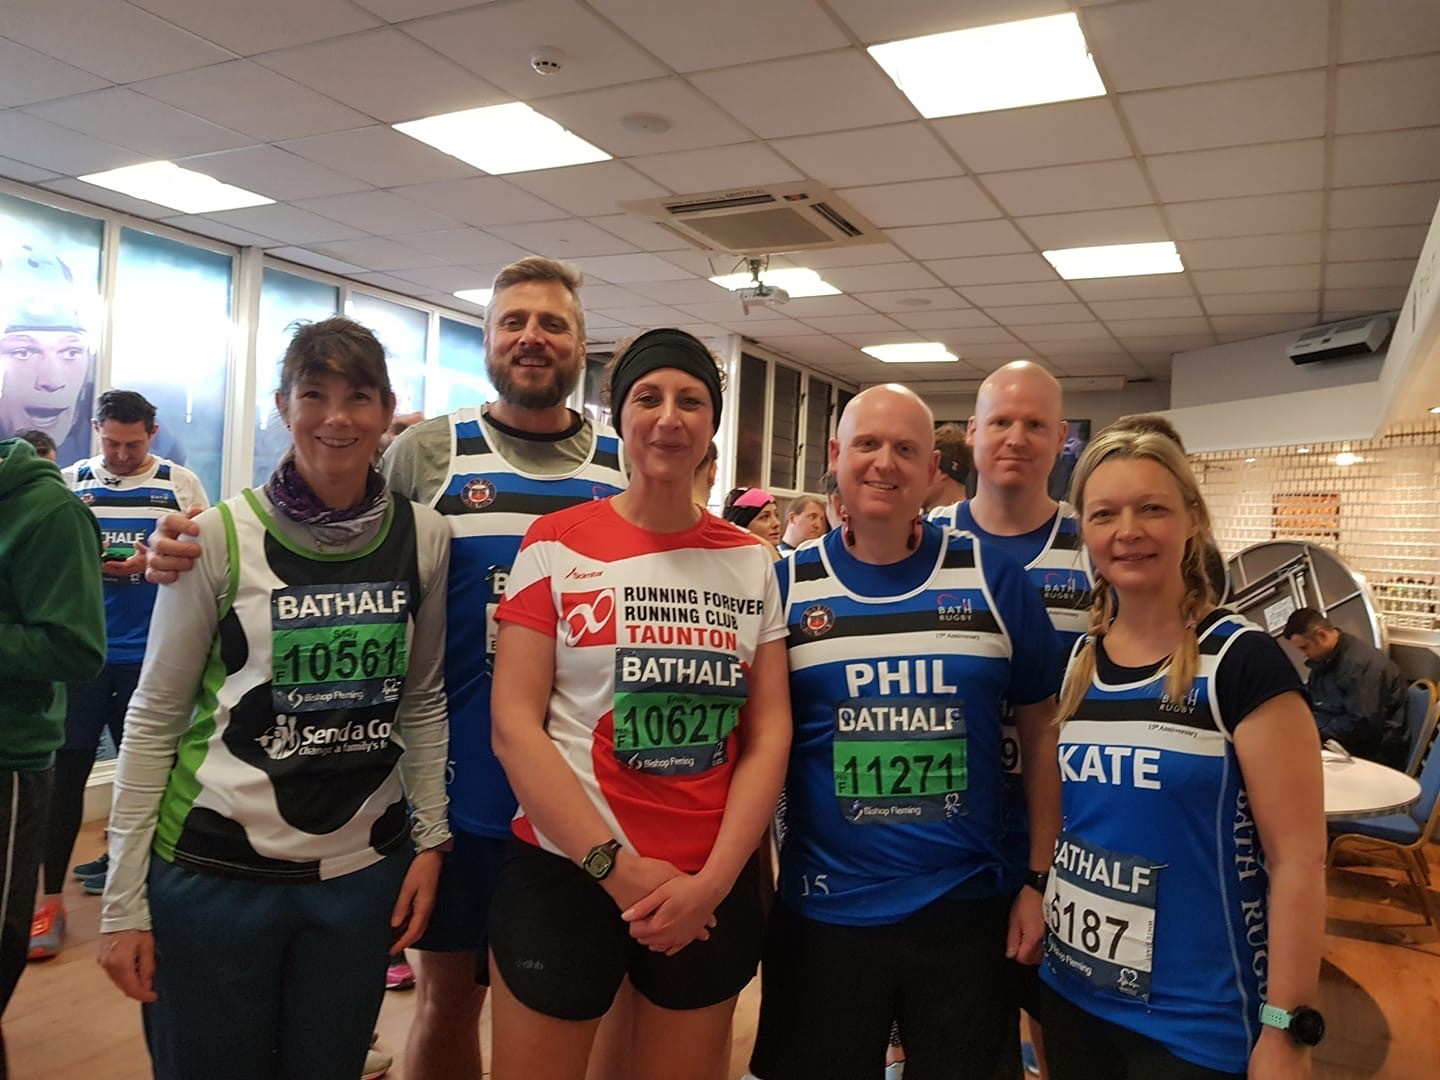 SQUAD: Running Forever at the Bath Half Marathon: Sally Tuer, John Allaway, Emily Vining, Phil Parsons, Mike Parsons, Kate Reed.